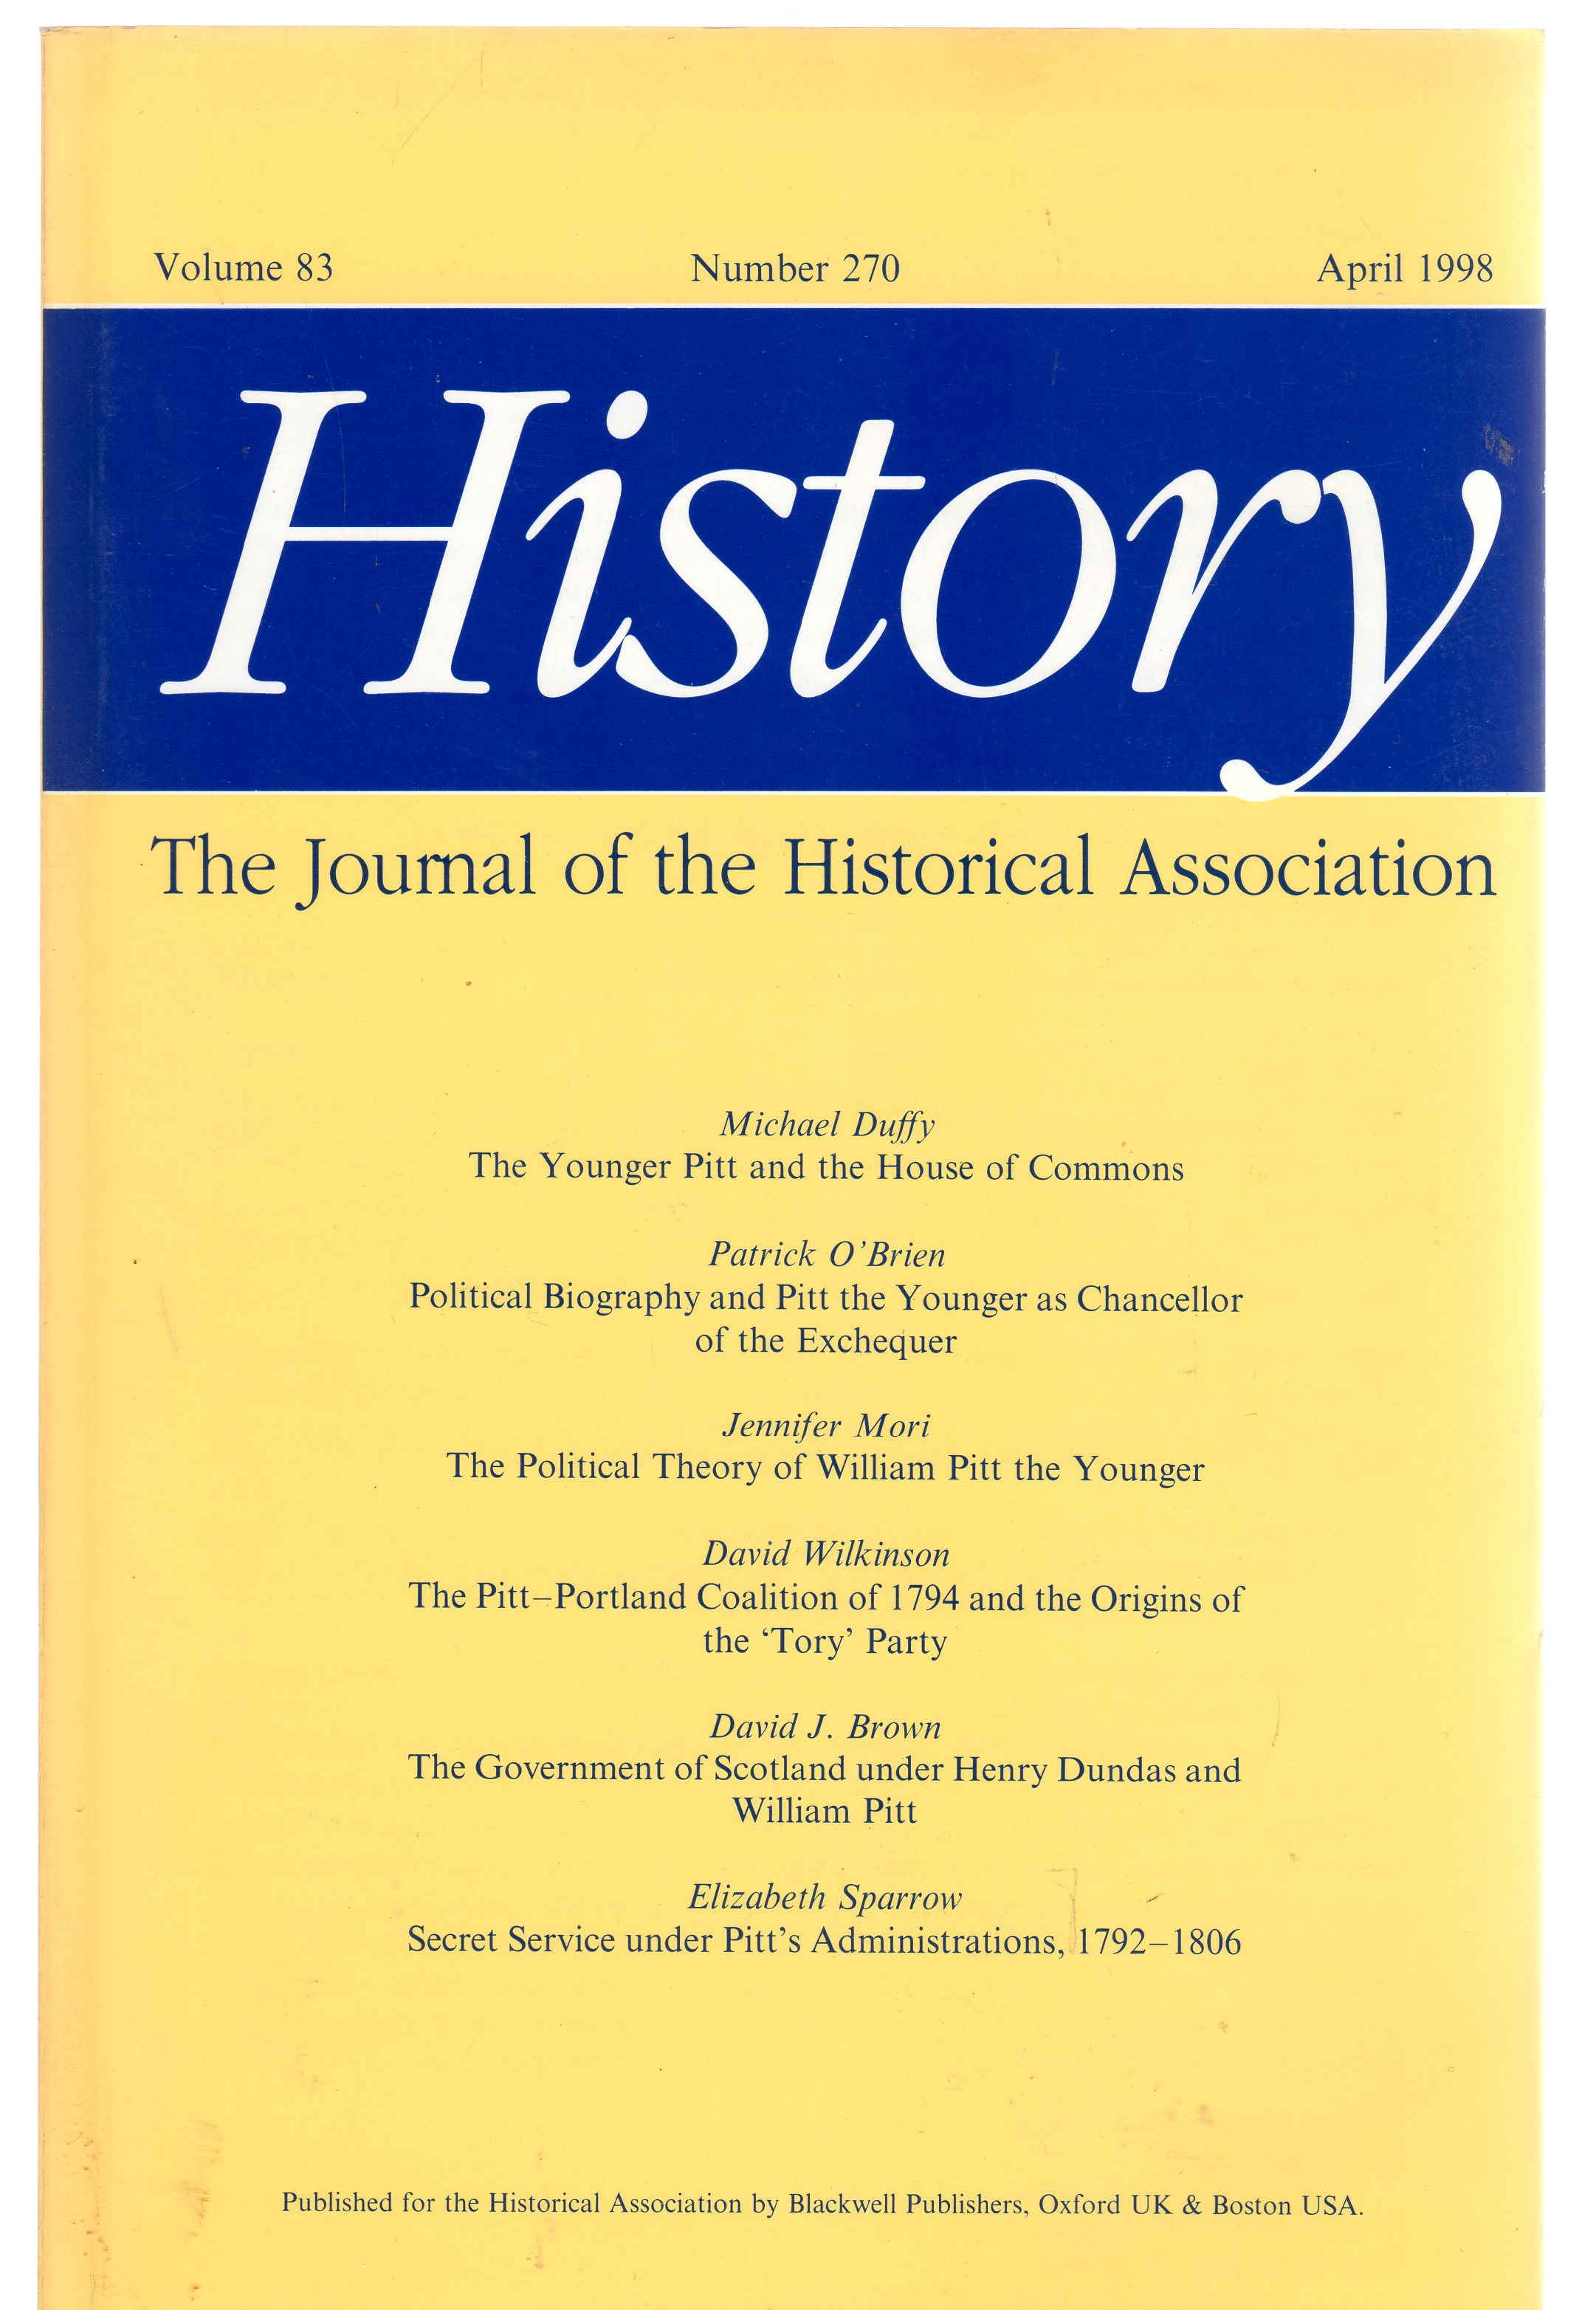 Image for History : The Journal of the Historical Association - Volume 83 Number 270 April 1998